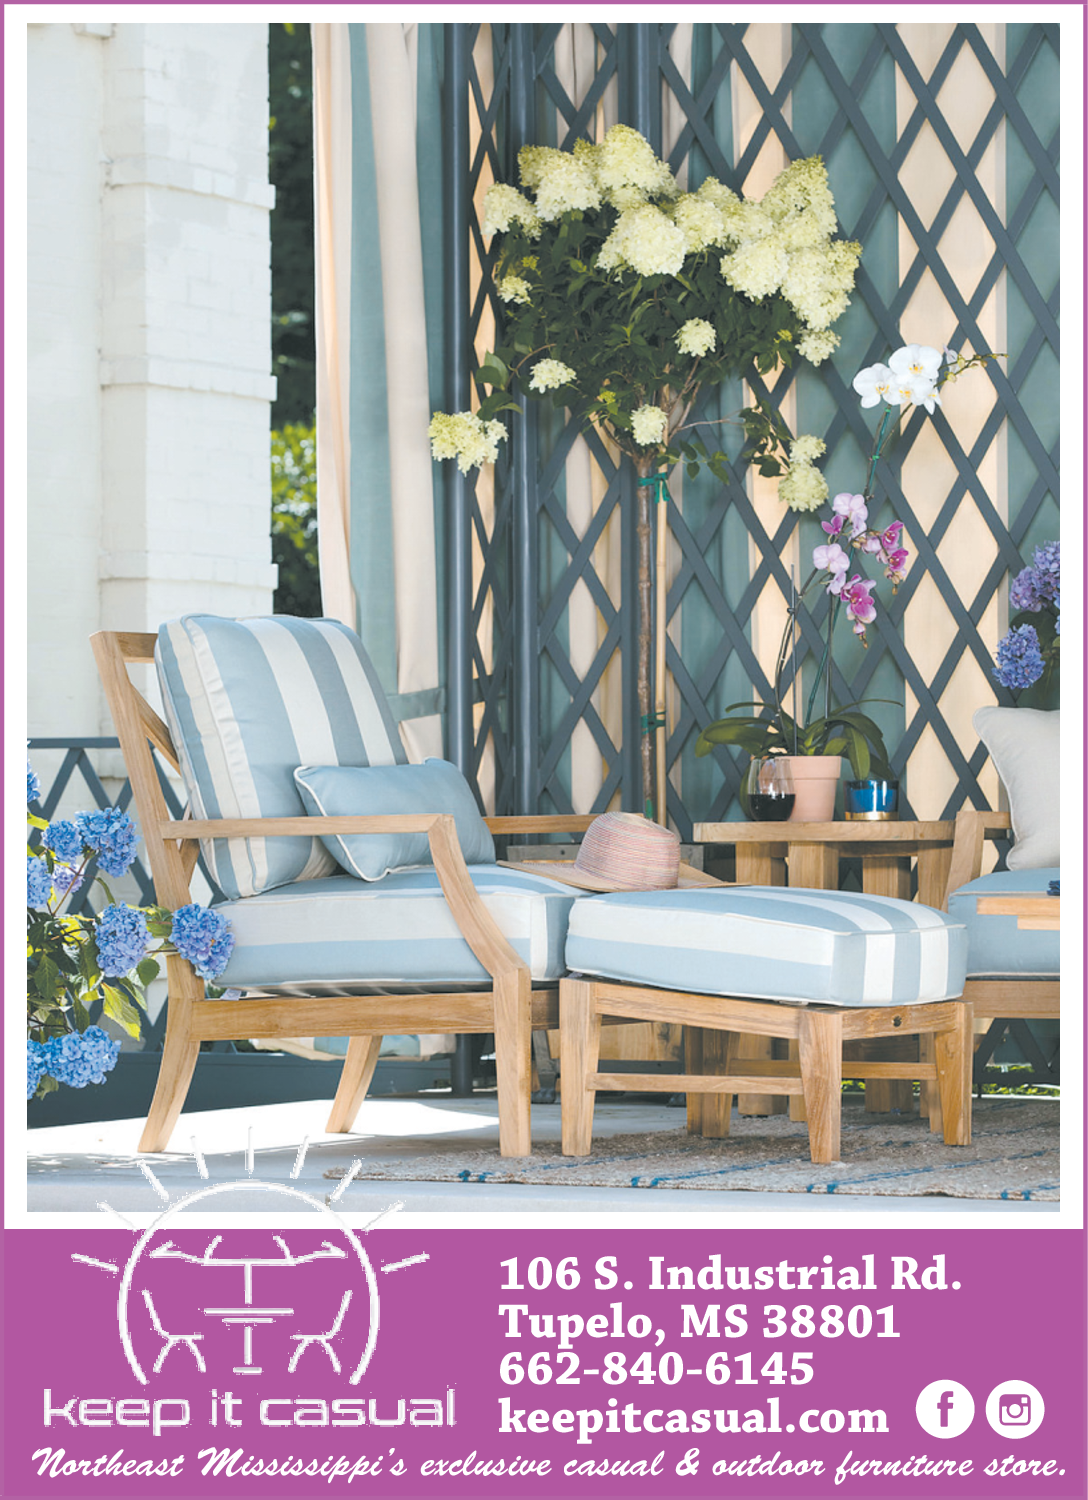 Charmant Casual U0026 Outdoor Furniture Store In Tupelo, MS, Furniture   Keep It Casual